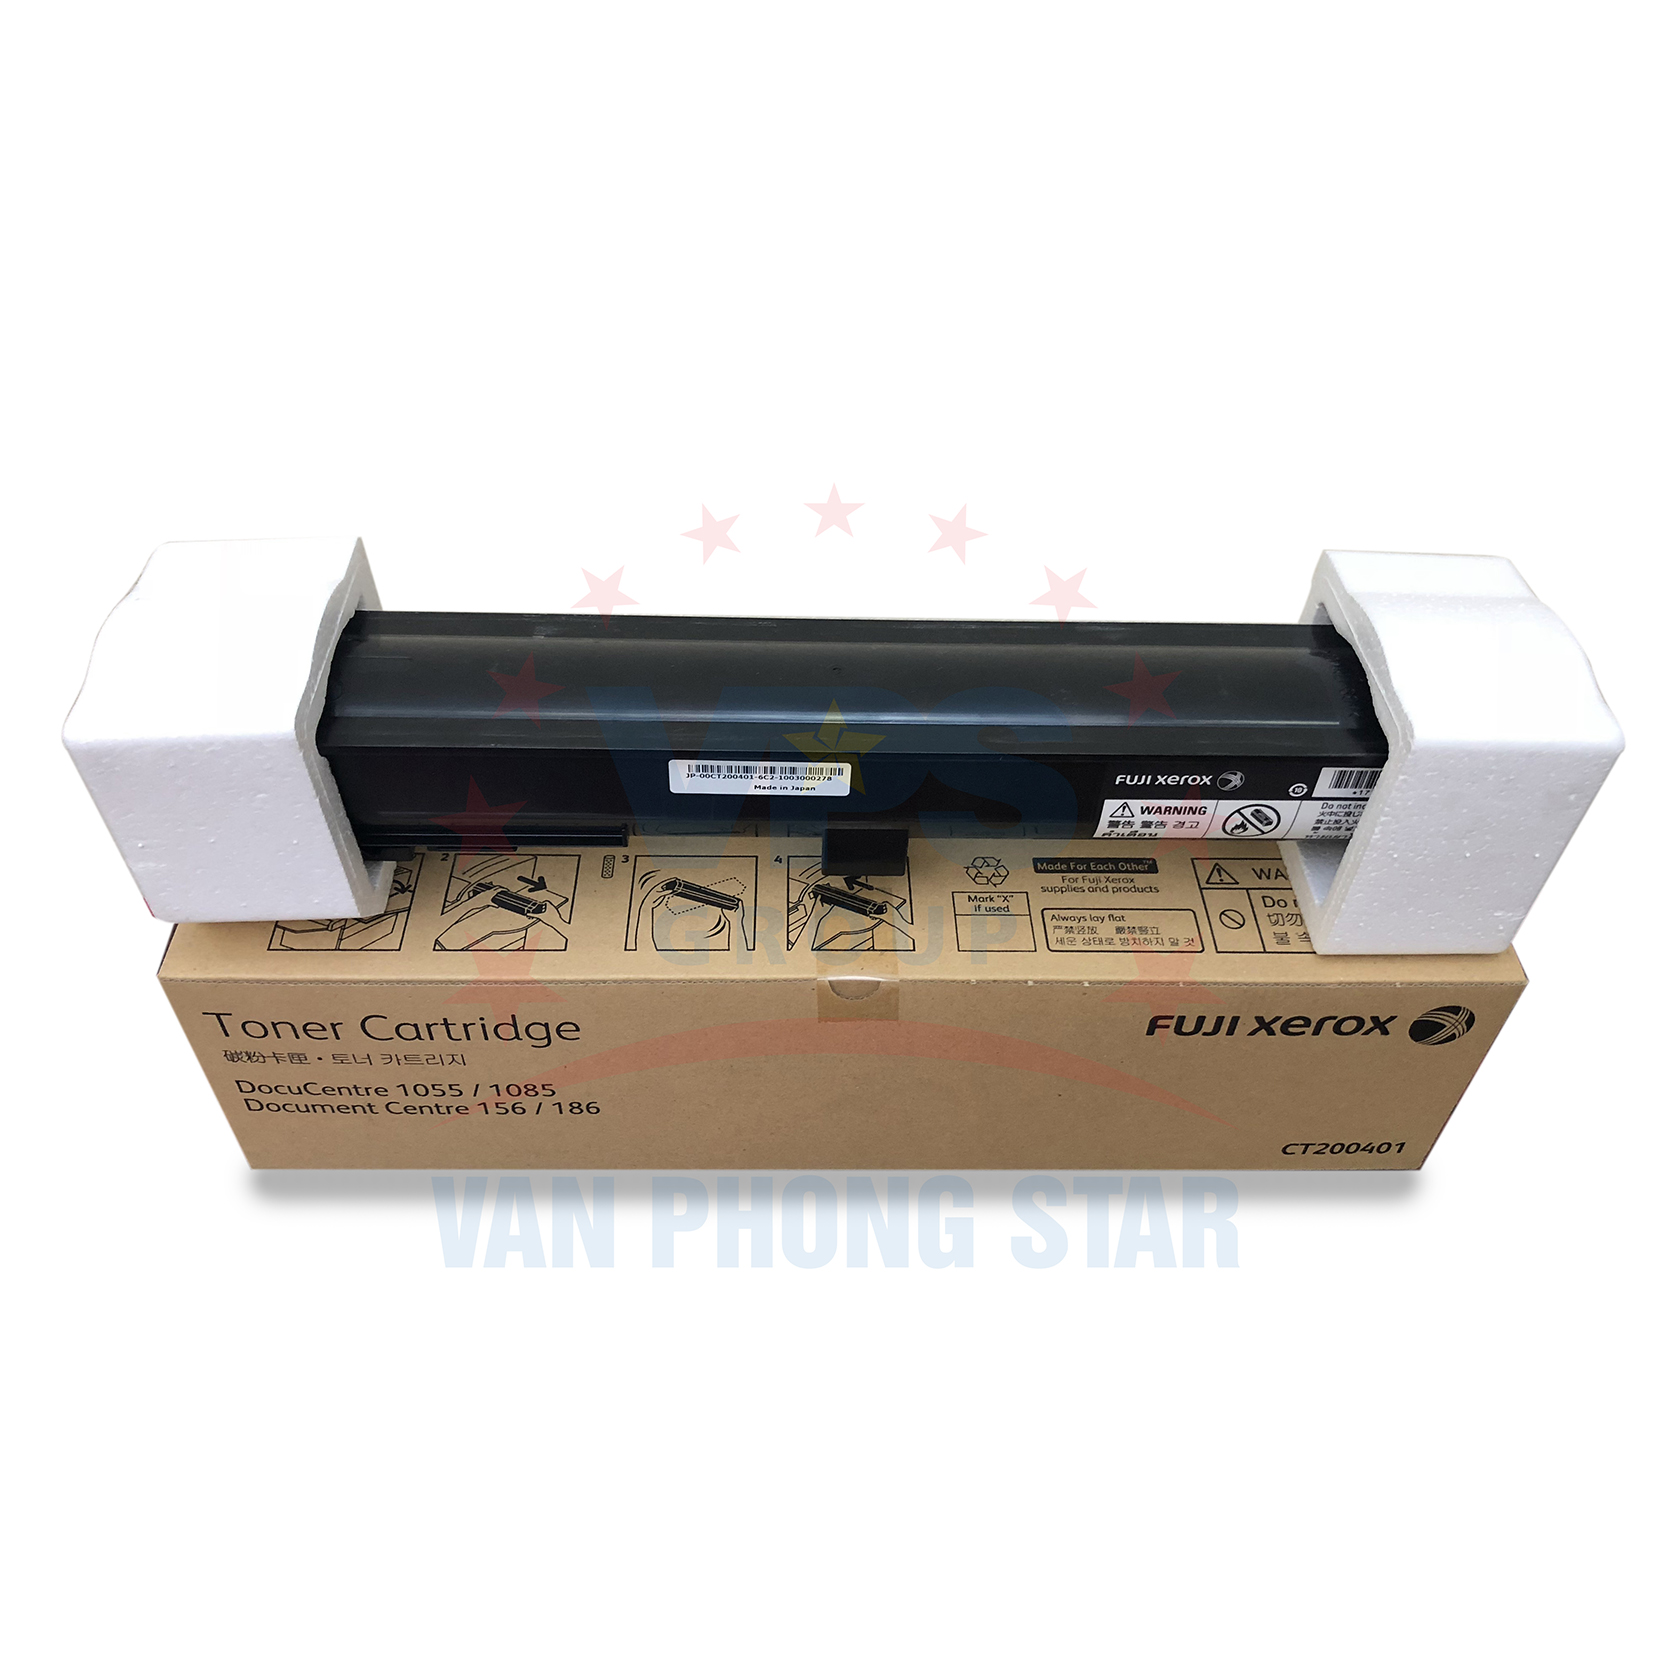 toner-cartridge-docucentre-1055-1085